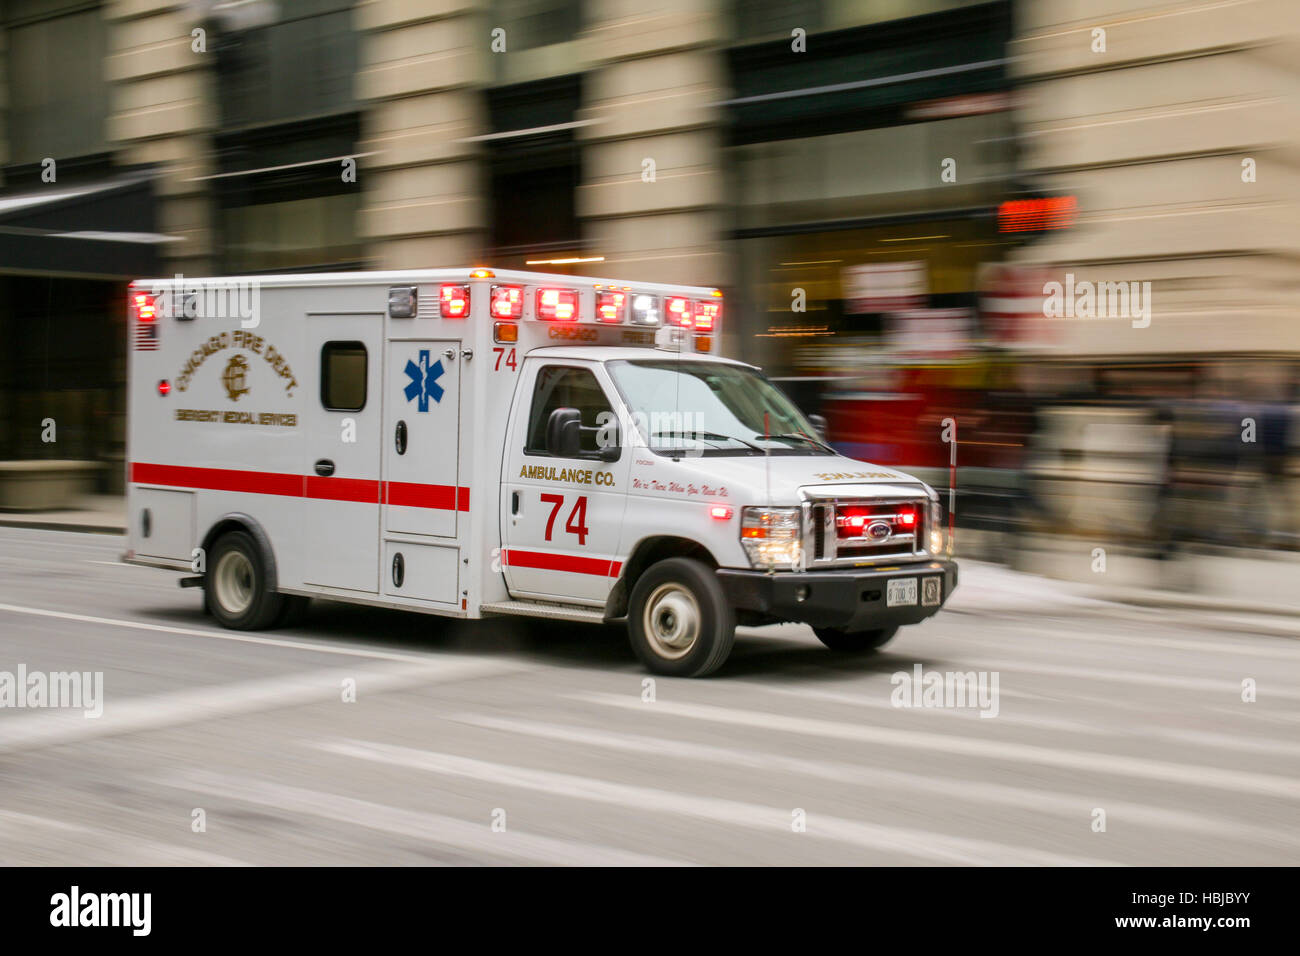 Chicago Fire Department ambulance in motion. - Stock Image